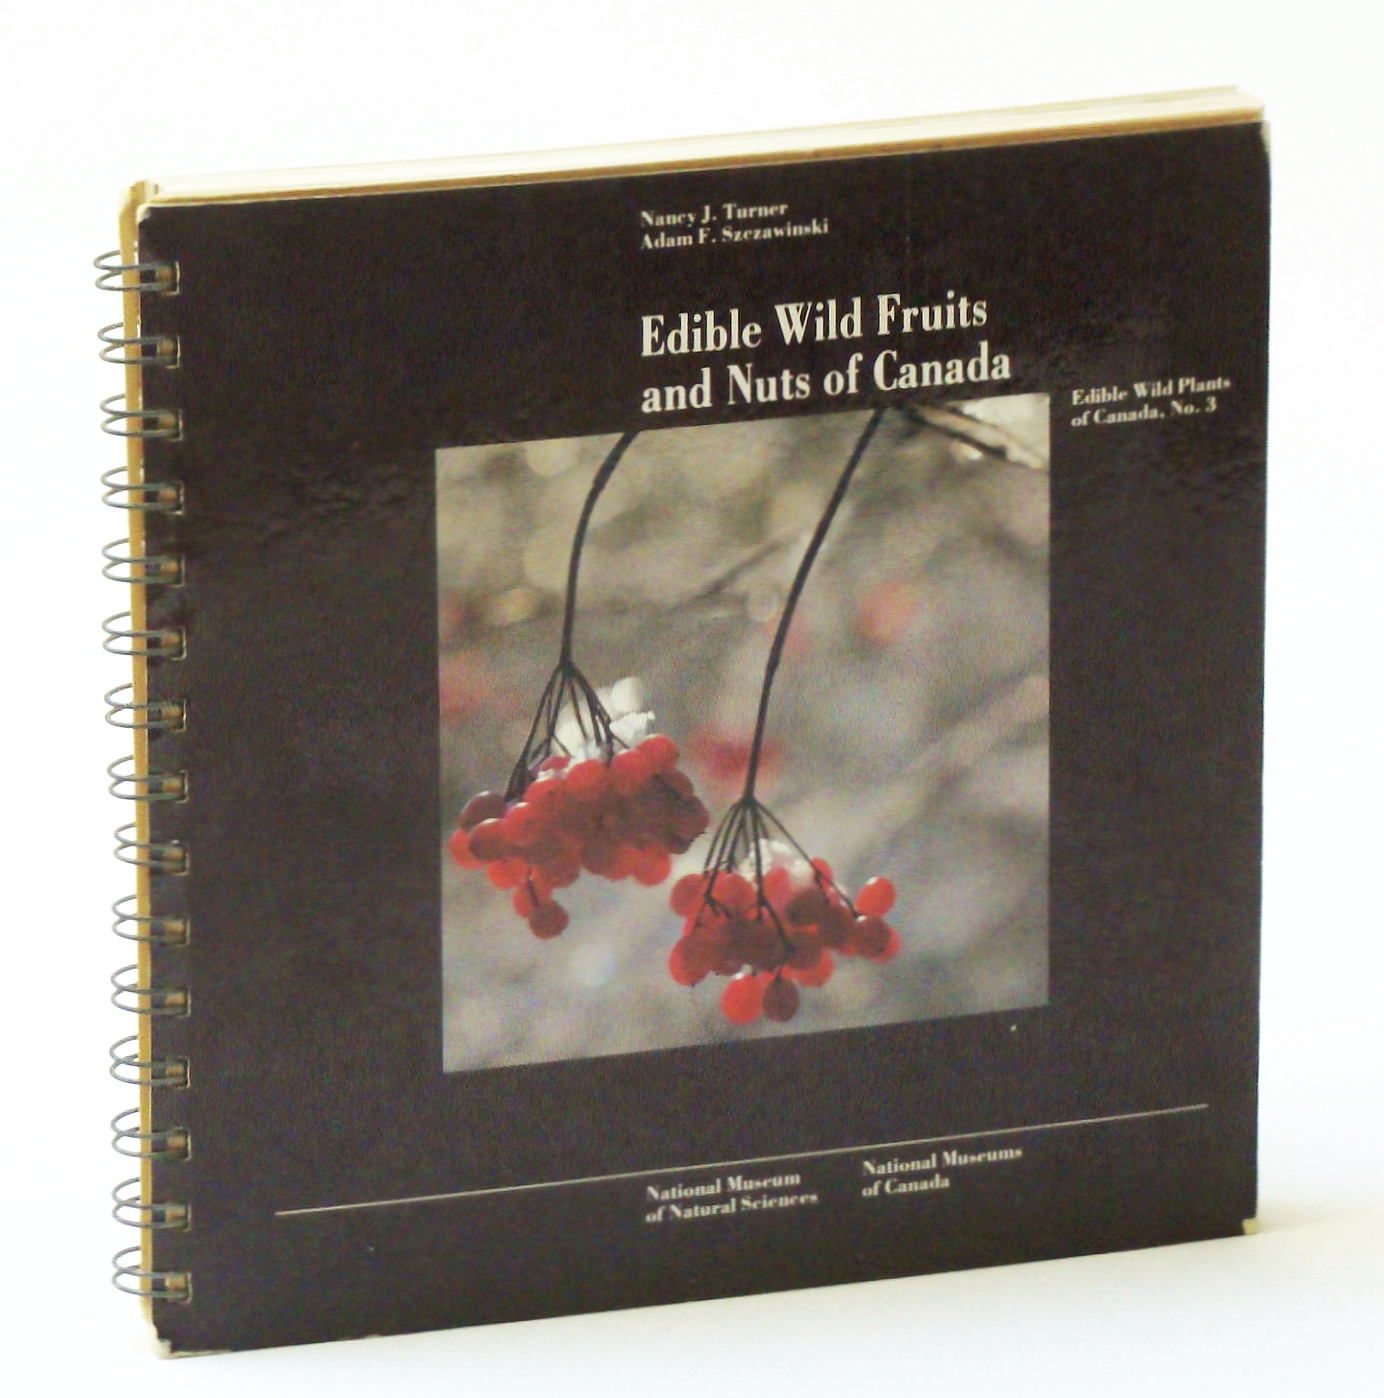 Image for Edible wild fruits and nuts of Canada (Edible wild plants of Canada)